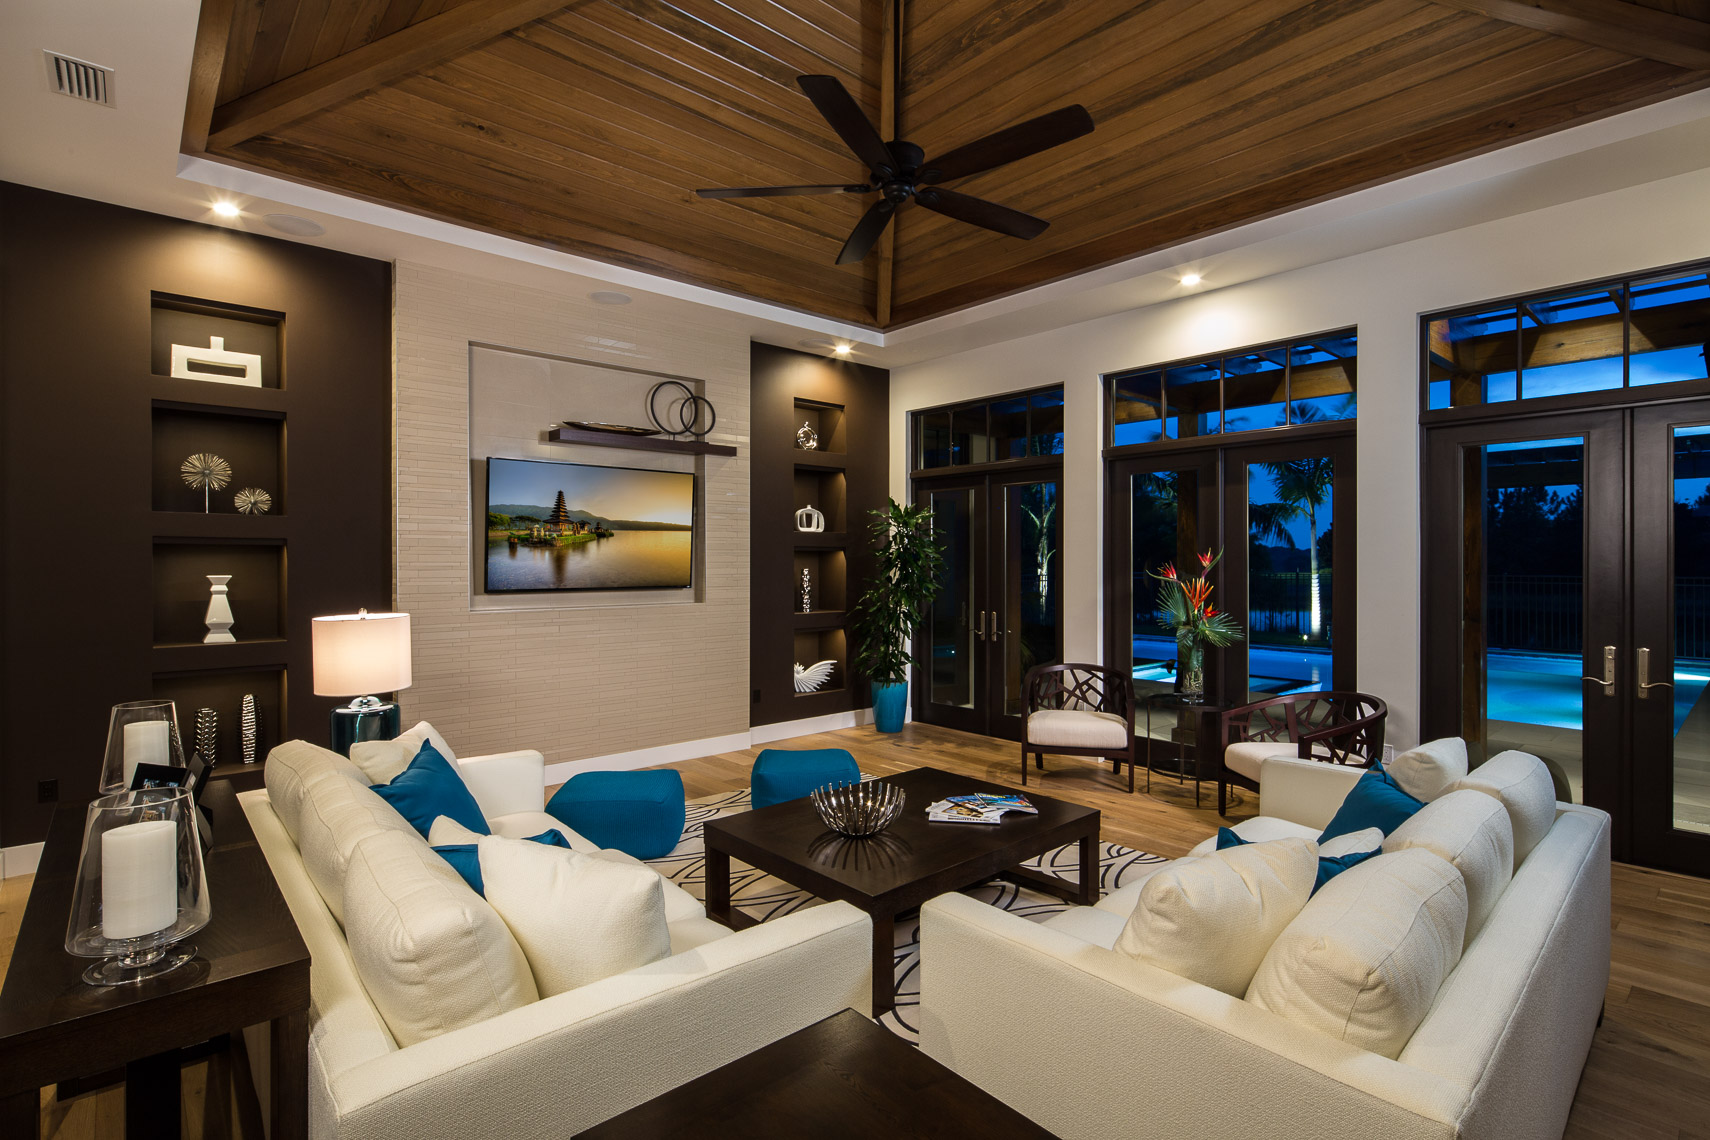 Living Room, Coastal West Indies Architecture - Mark Borosch Photography - Lakewood Ranch, FL